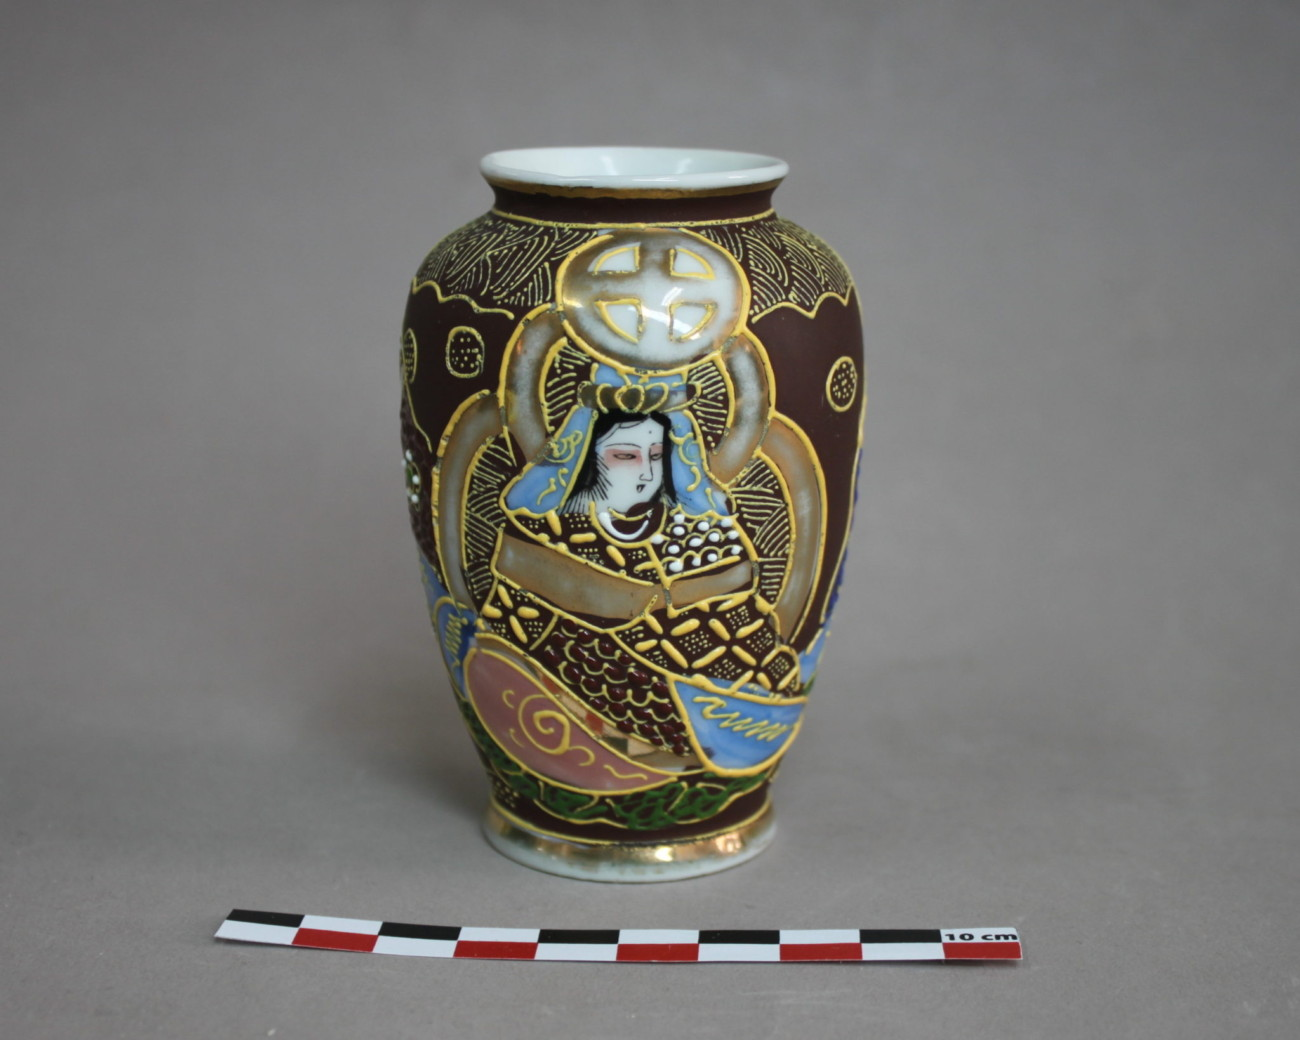 Restauration d'un petit vase en porcelaine asiatique